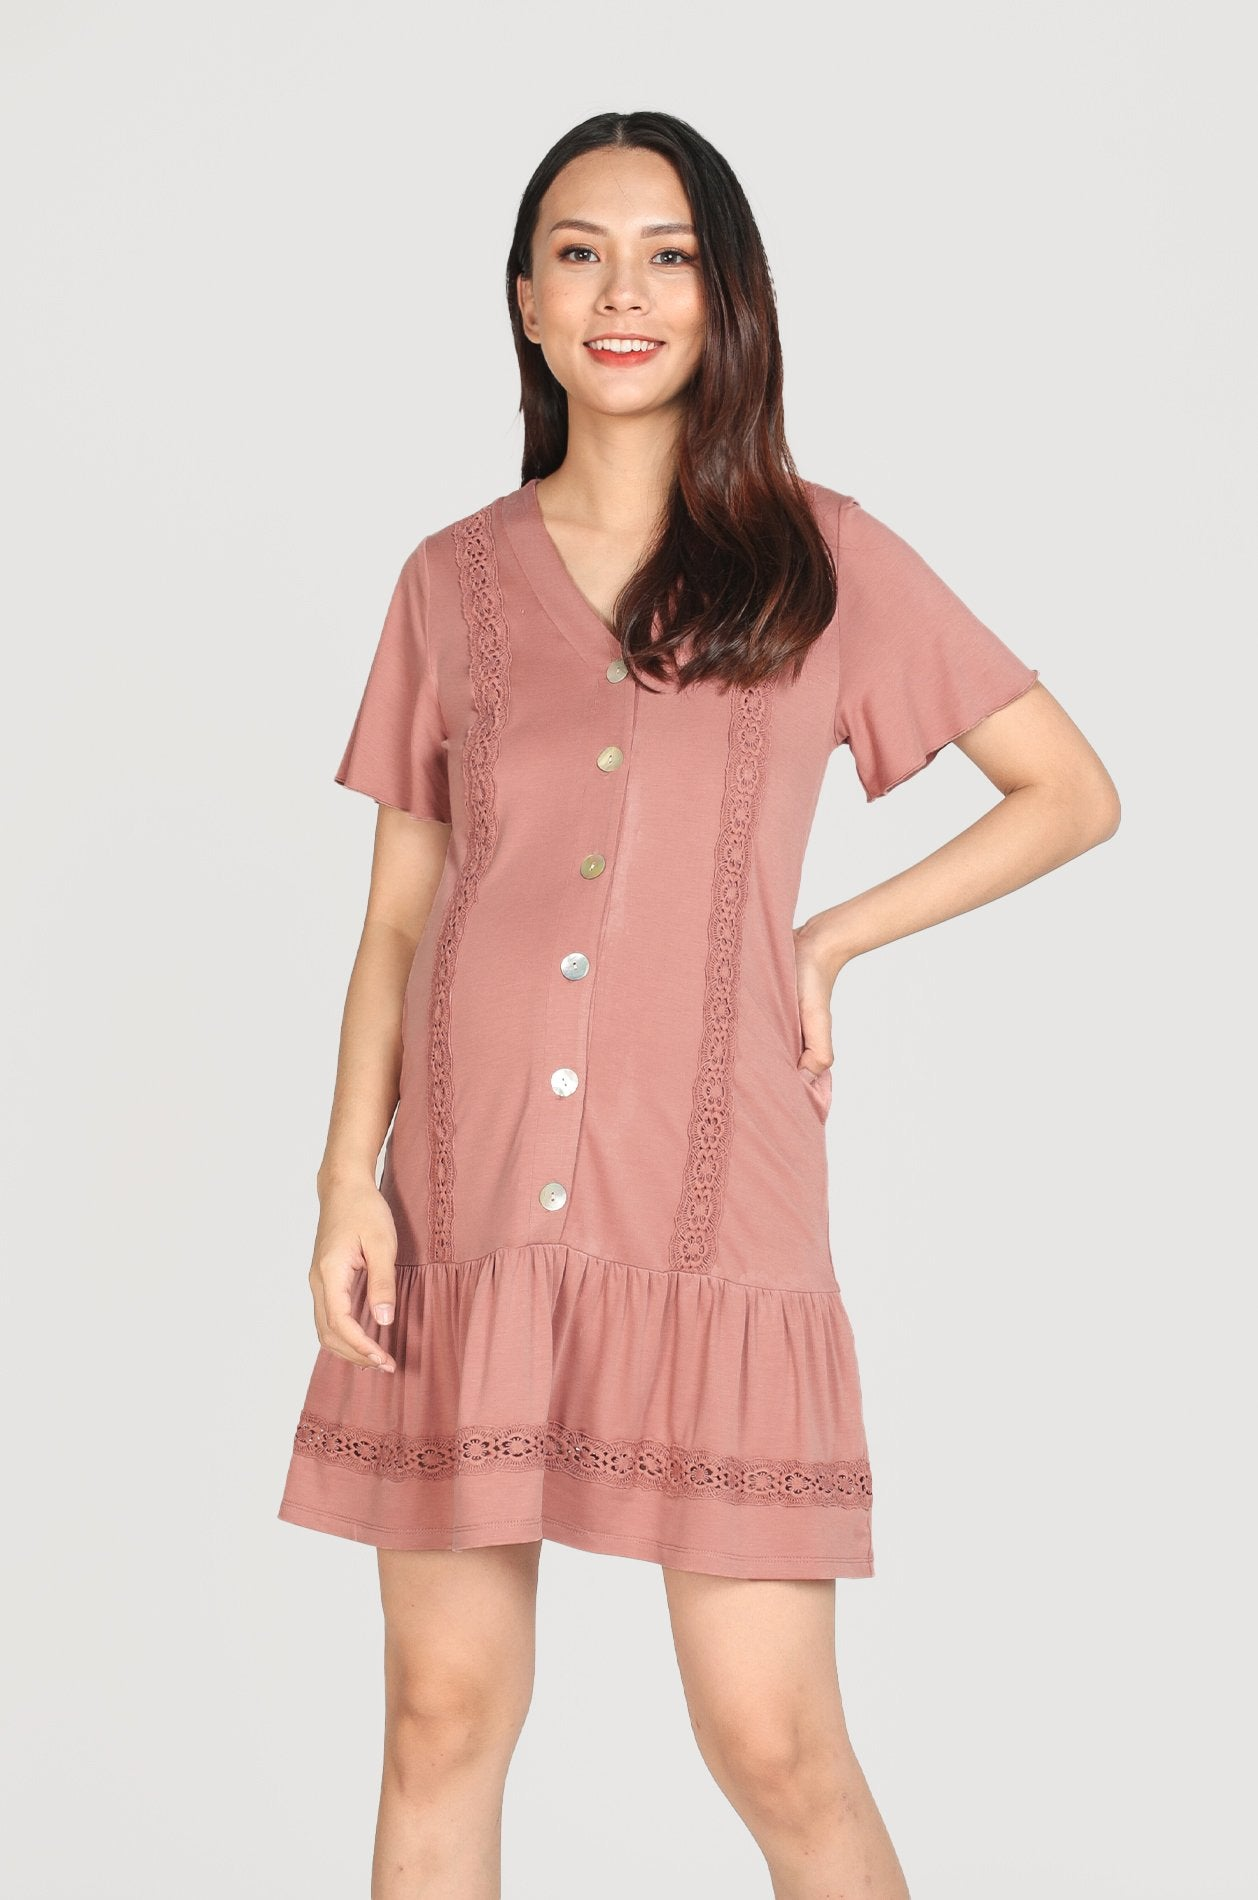 Ray Eyelet Trimming Nursing Dress In Mauve Pink Nursing Wear Jump Eat Cry